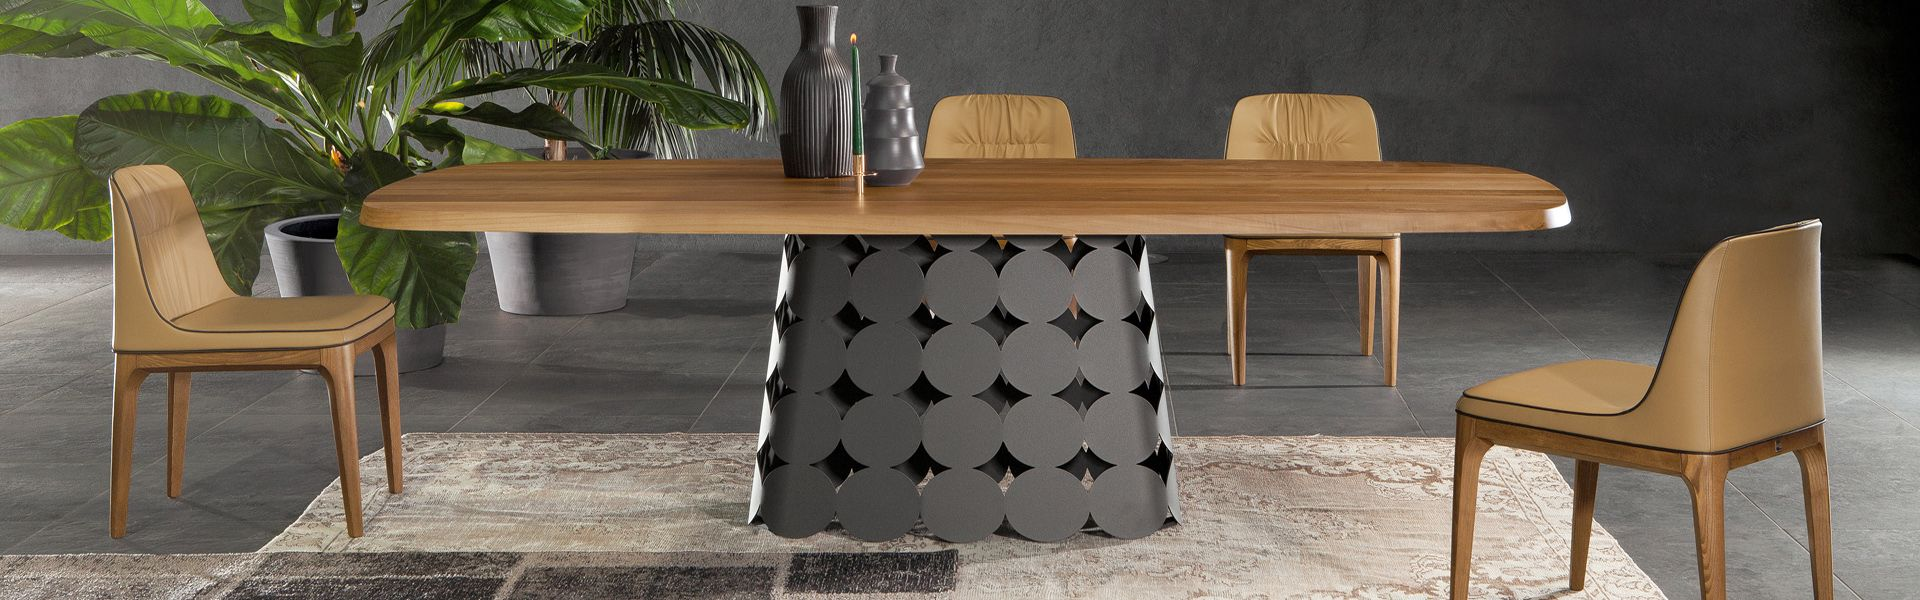 mobilier de jardin design sifas outdoor dedon flexform royal botania. Black Bedroom Furniture Sets. Home Design Ideas